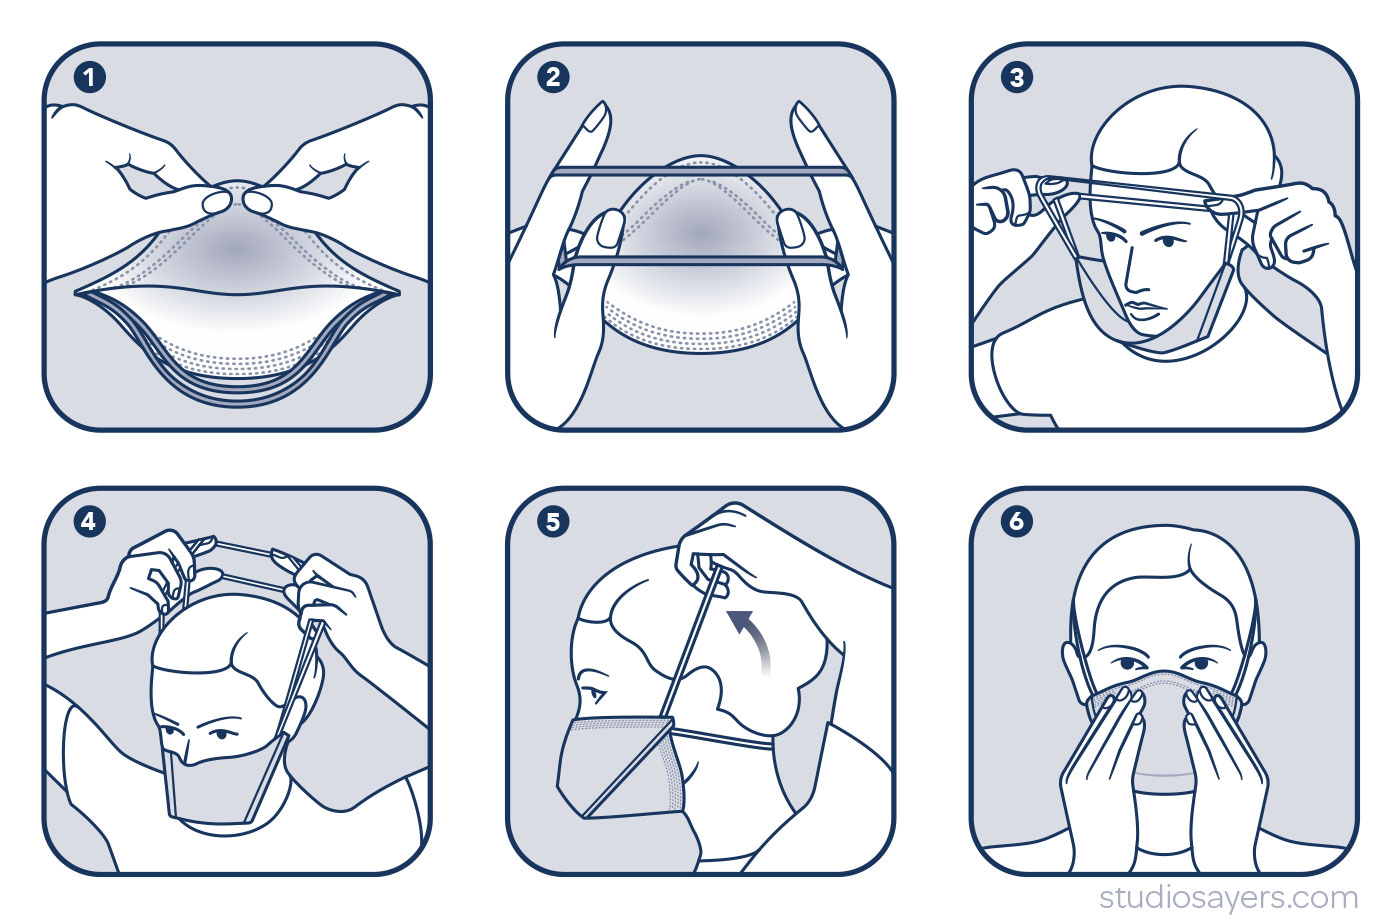 Line drawings showing the steps required to put on an N95 mask